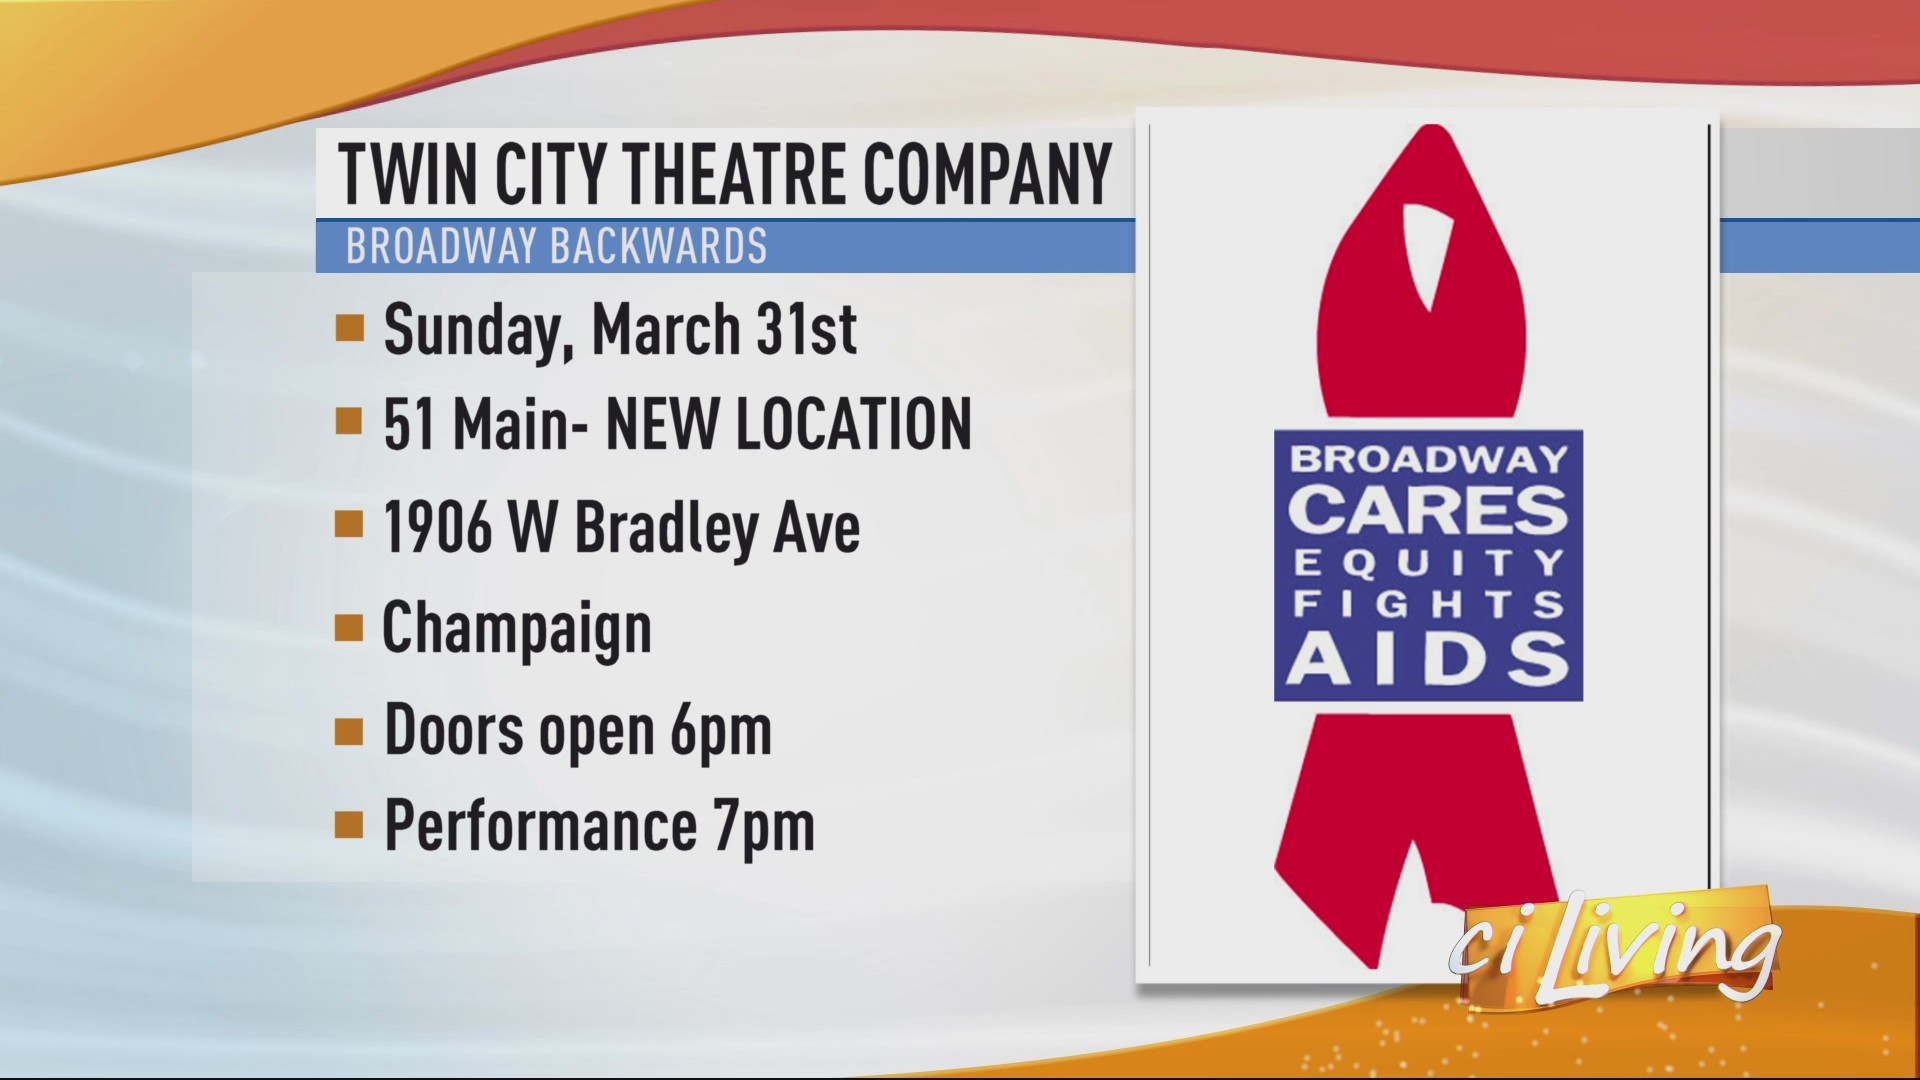 Twin City Theatre Company Broadway Backwards